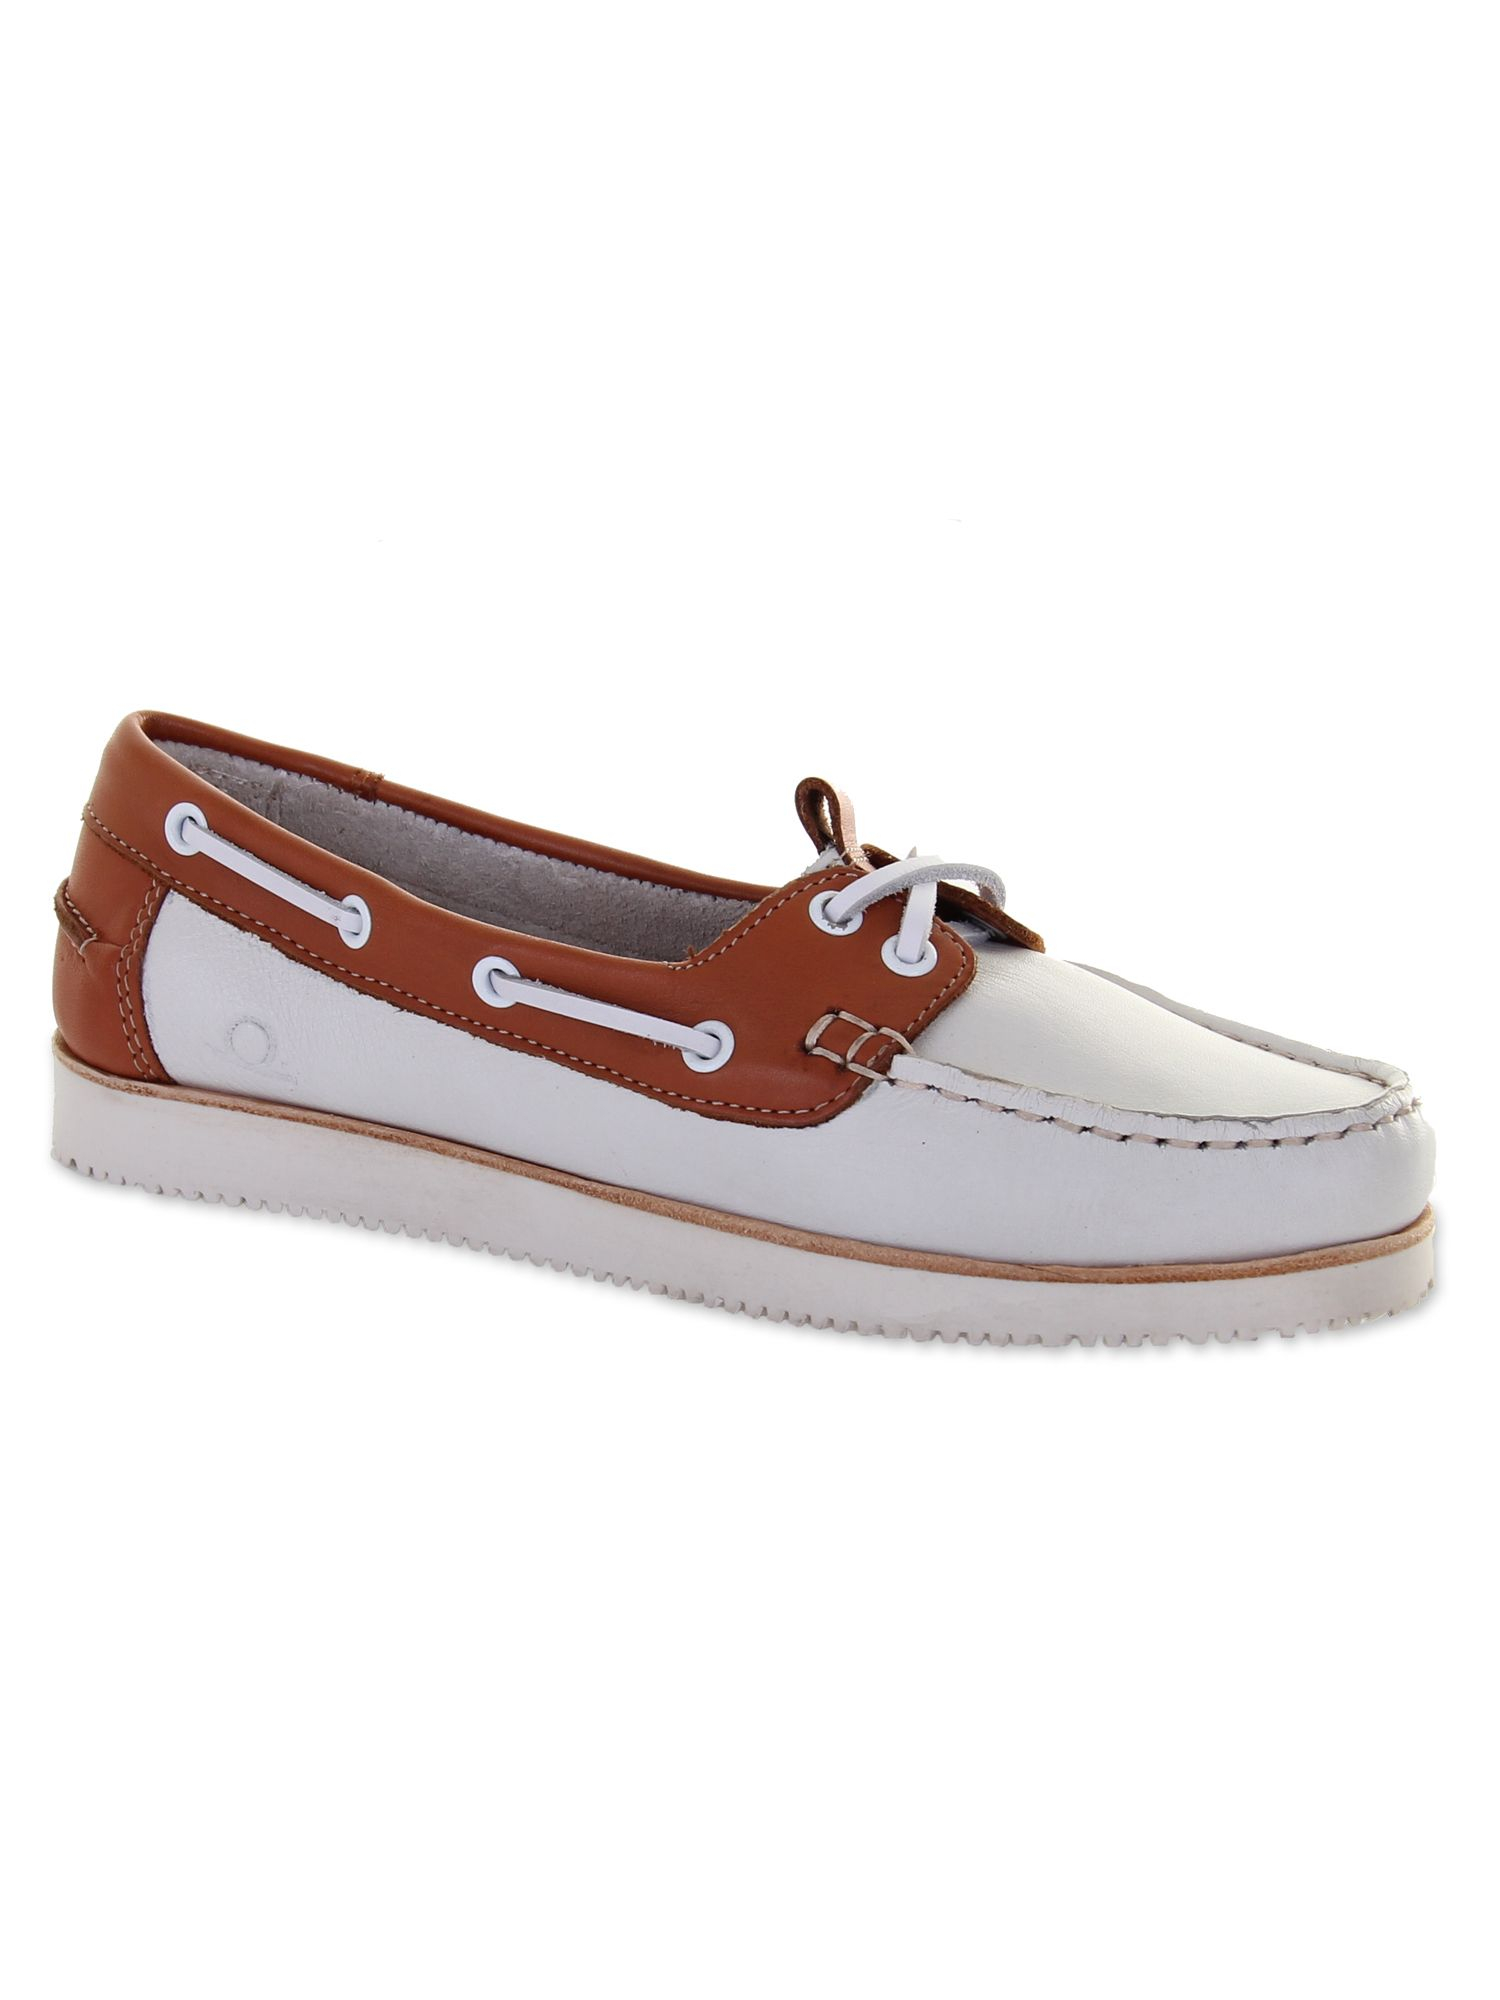 chatham josie wedge boat shoes in white lyst